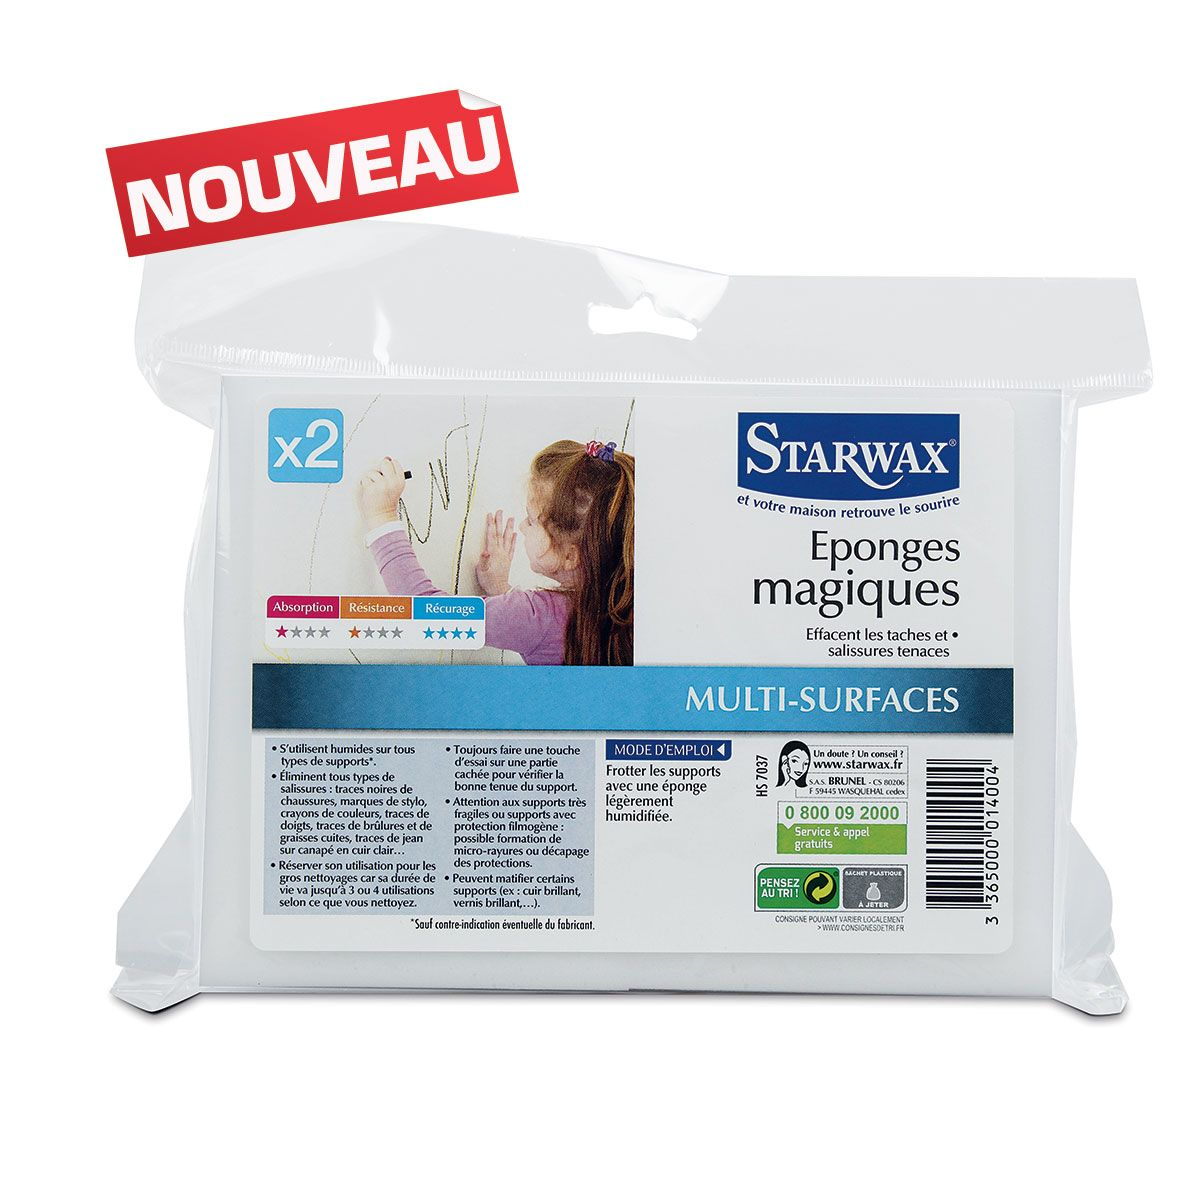 Eponges magiques - Starwax